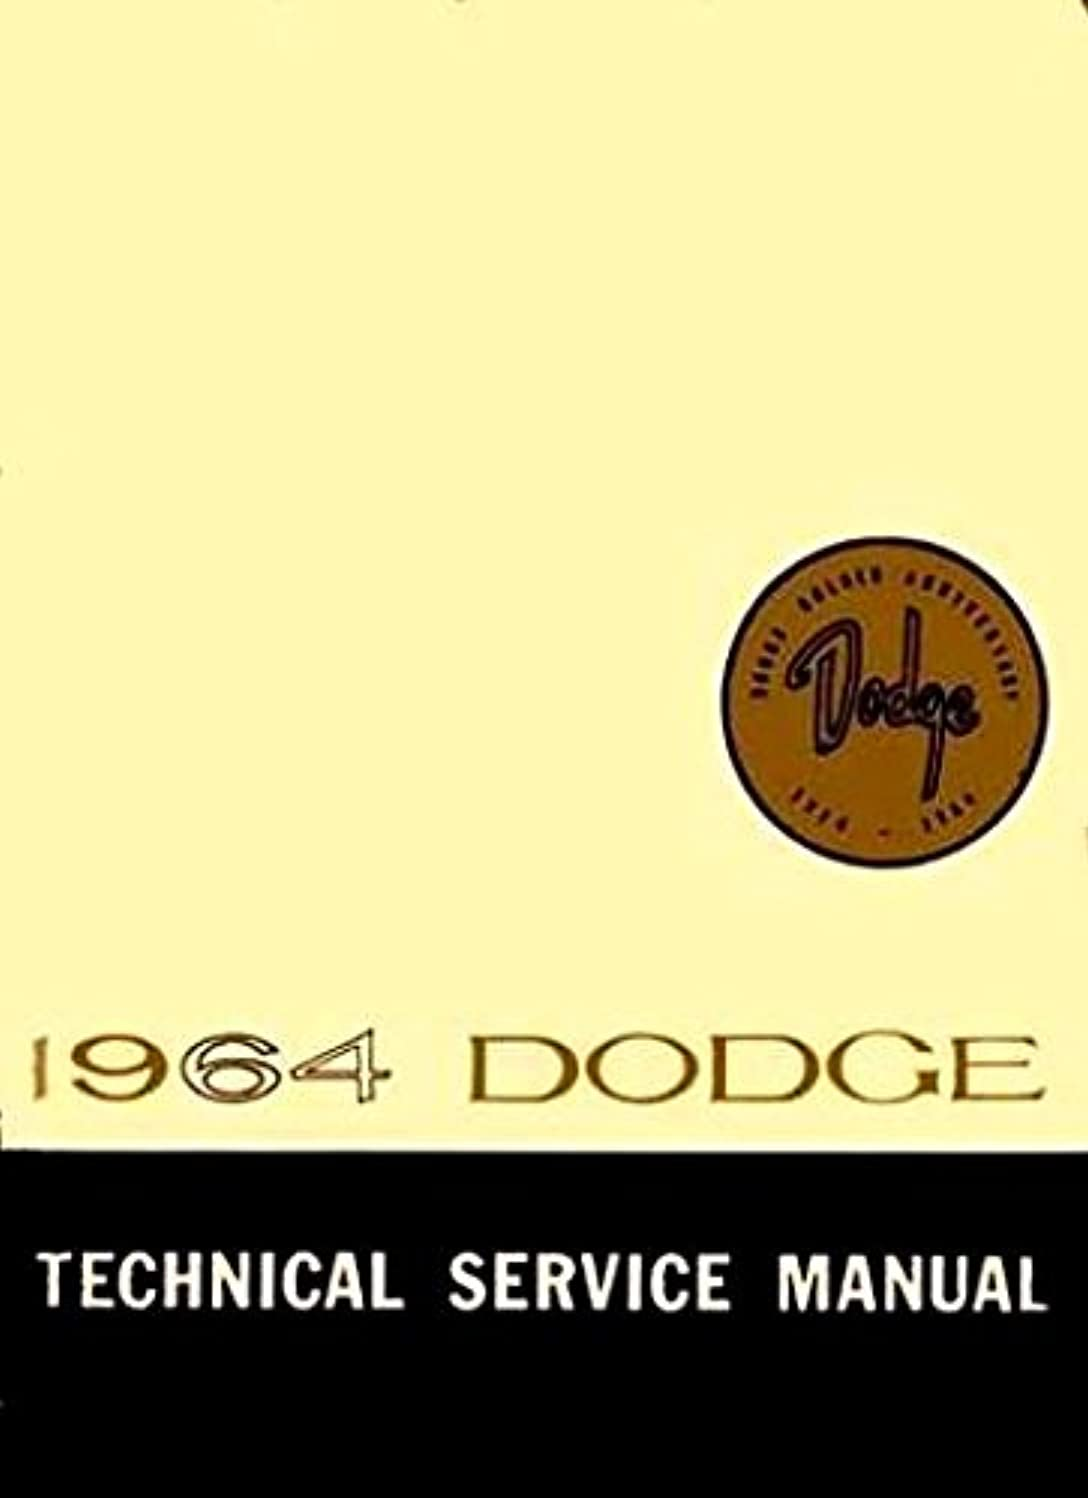 STEP-BY-STEP 1964 DODGE FACTORY CHASSIS REPAIR SHOP & SERVICE MANUAL & BODY MANUAL - Includes Dart 170, Dart 270, Dart GT, Dodge 330, Dodge 440, Polara, and Polara 500.